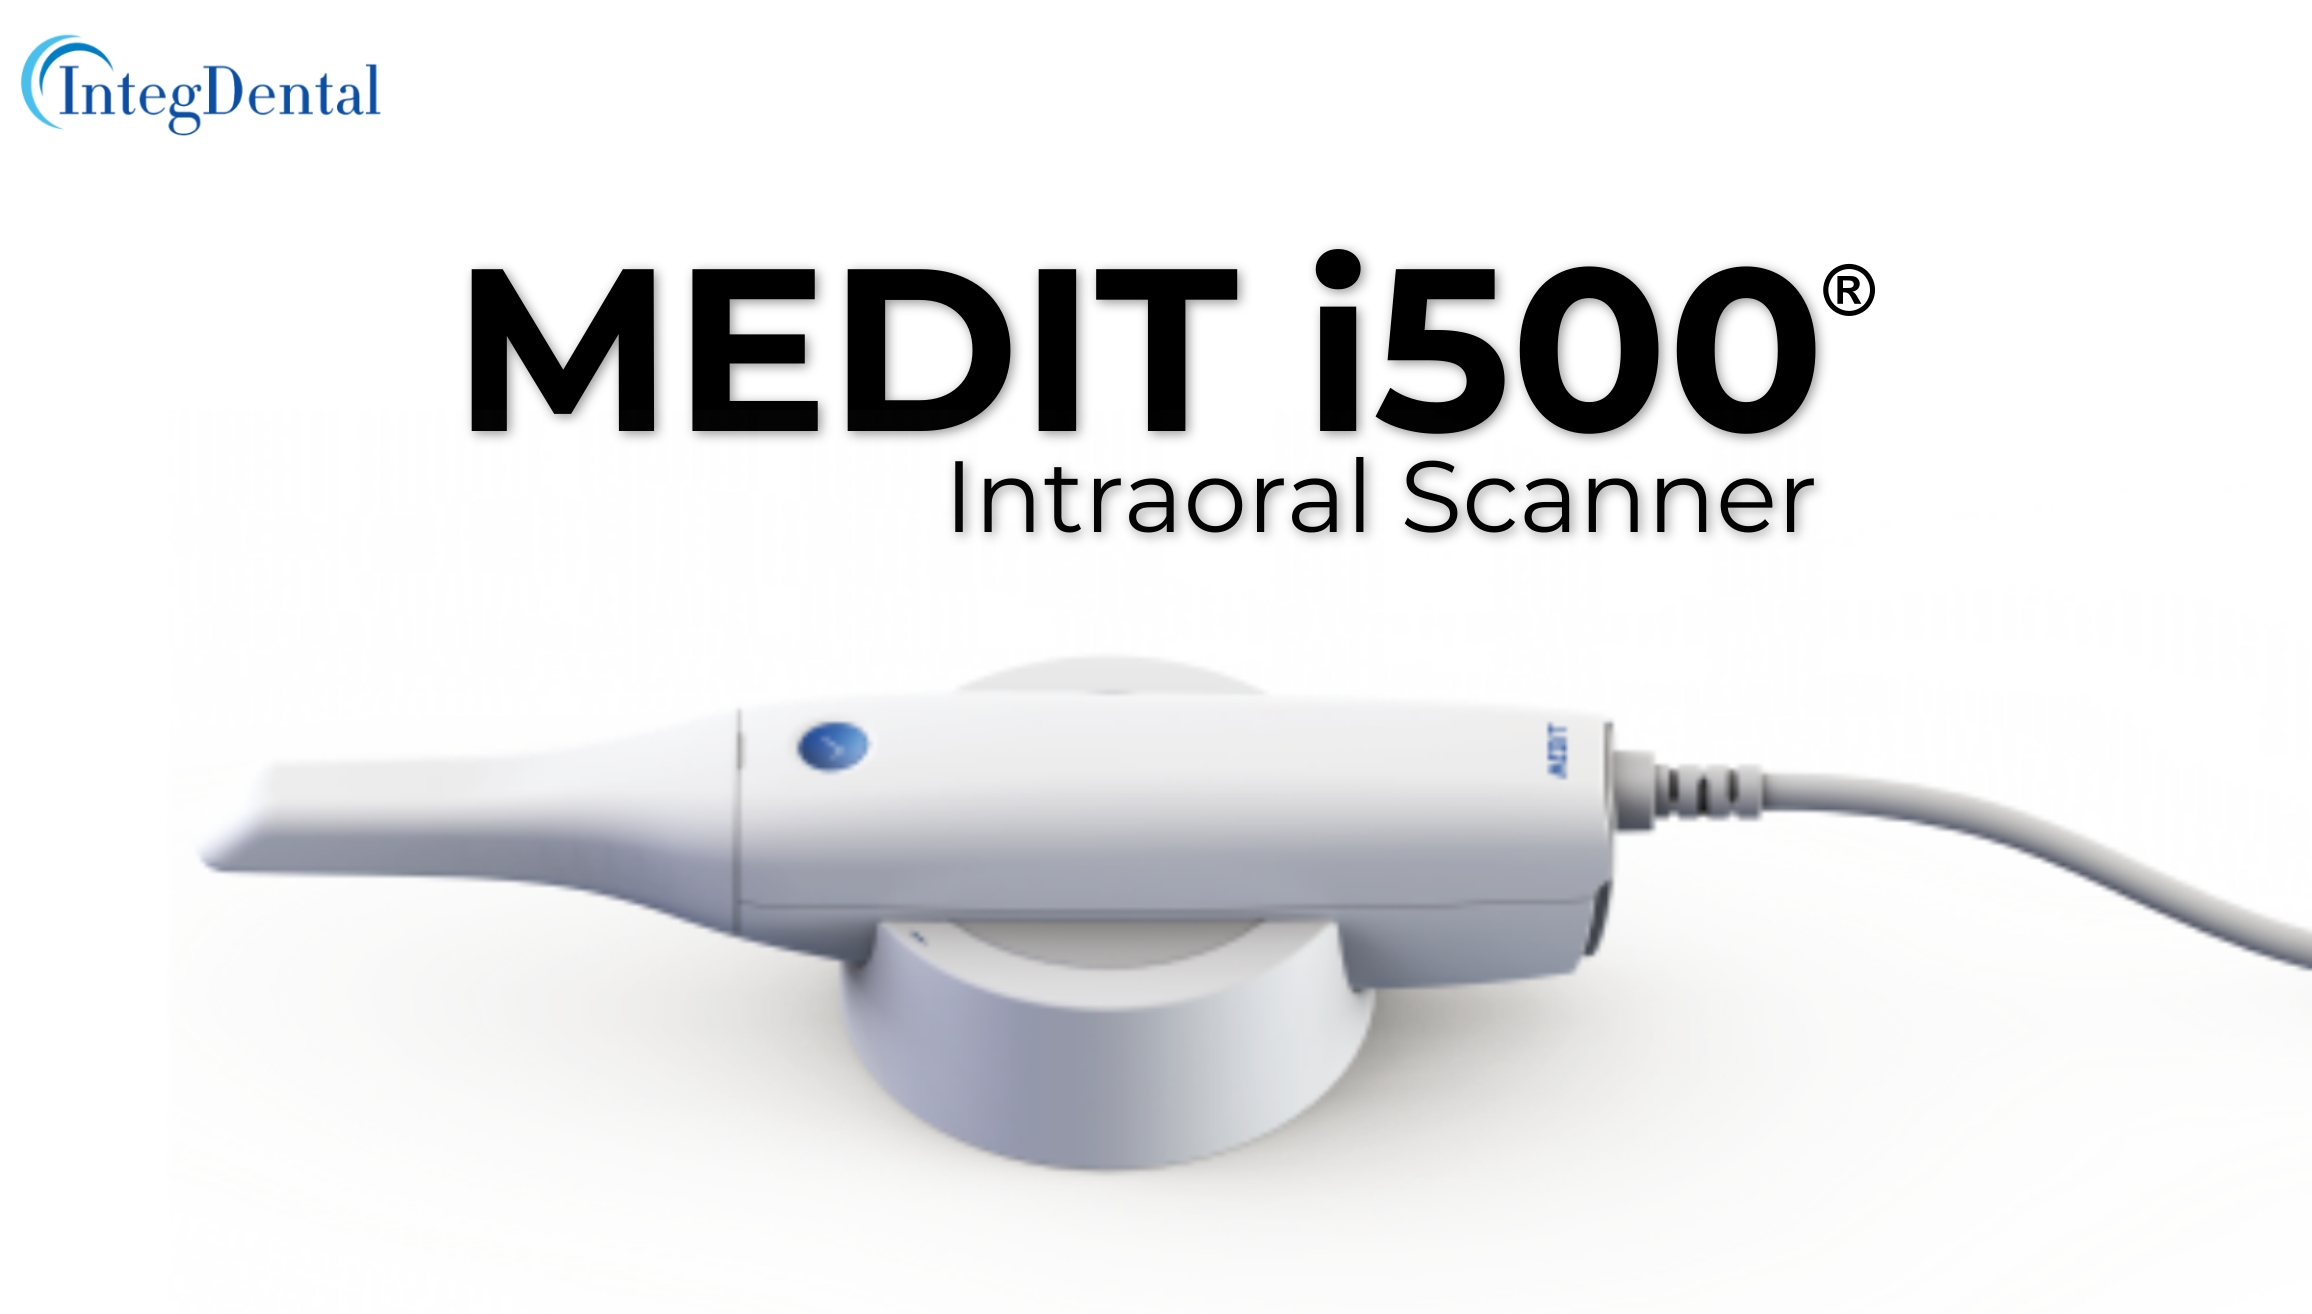 intraoral-scanner-category-banner-1-.jpg